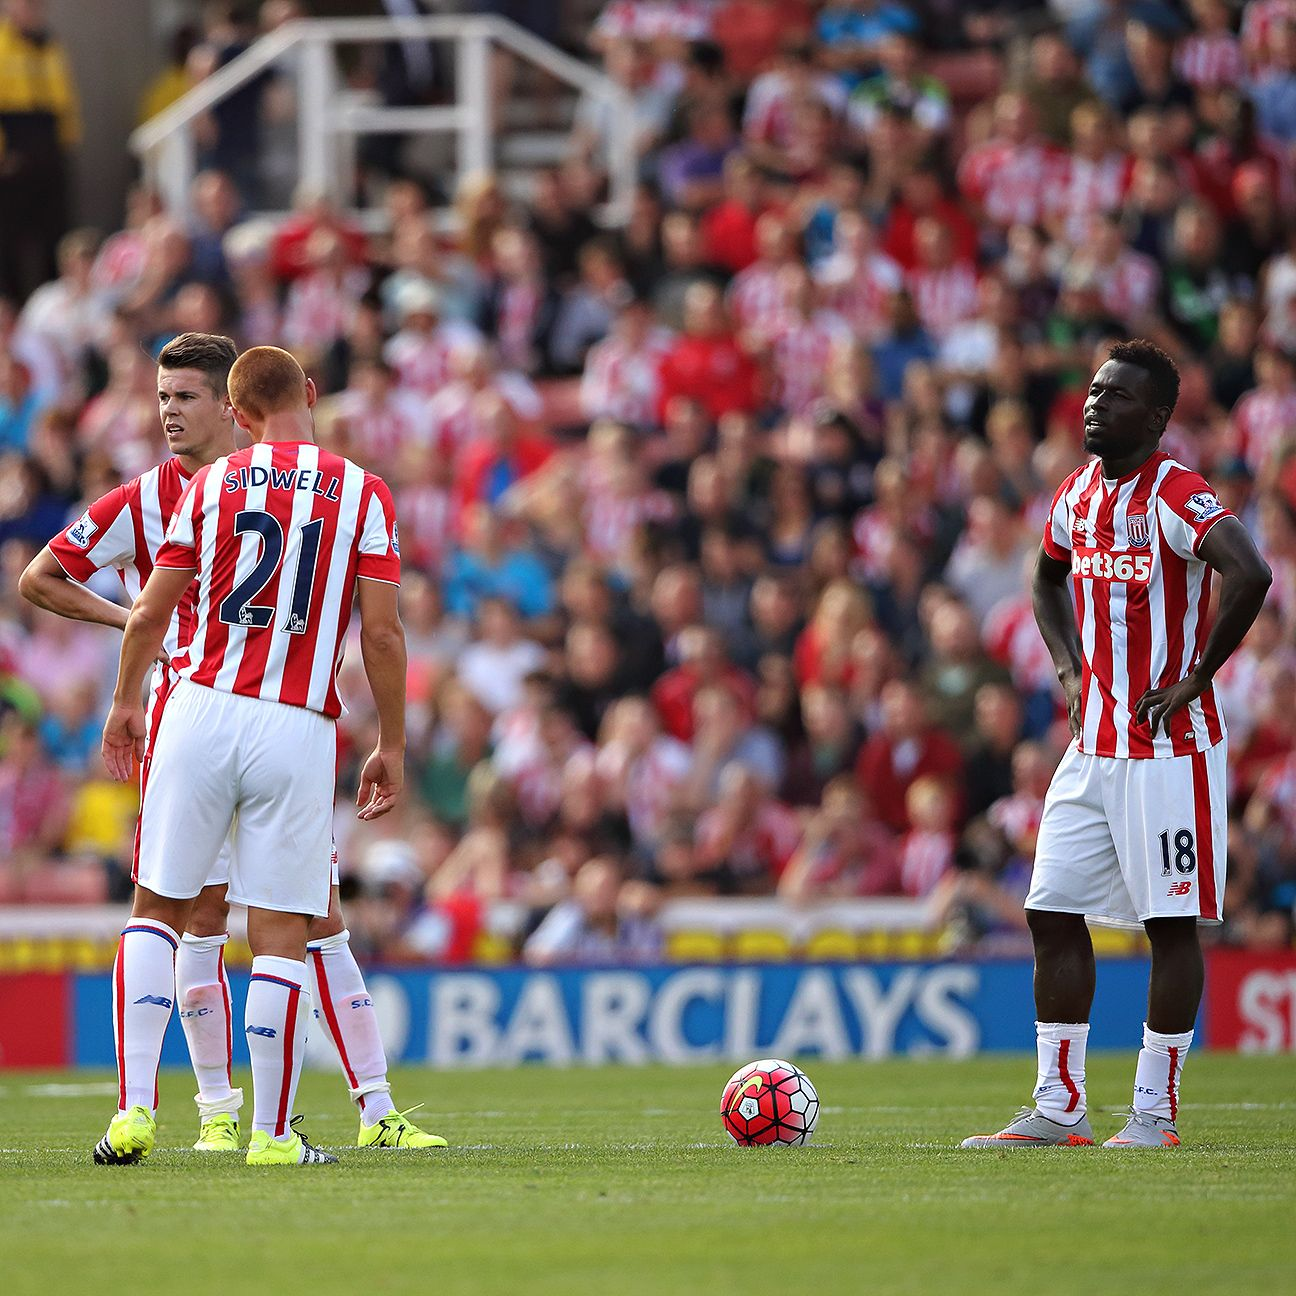 Stoke were stung late by Liverpool, but some attacking help could be on the way to the Potteries soon.